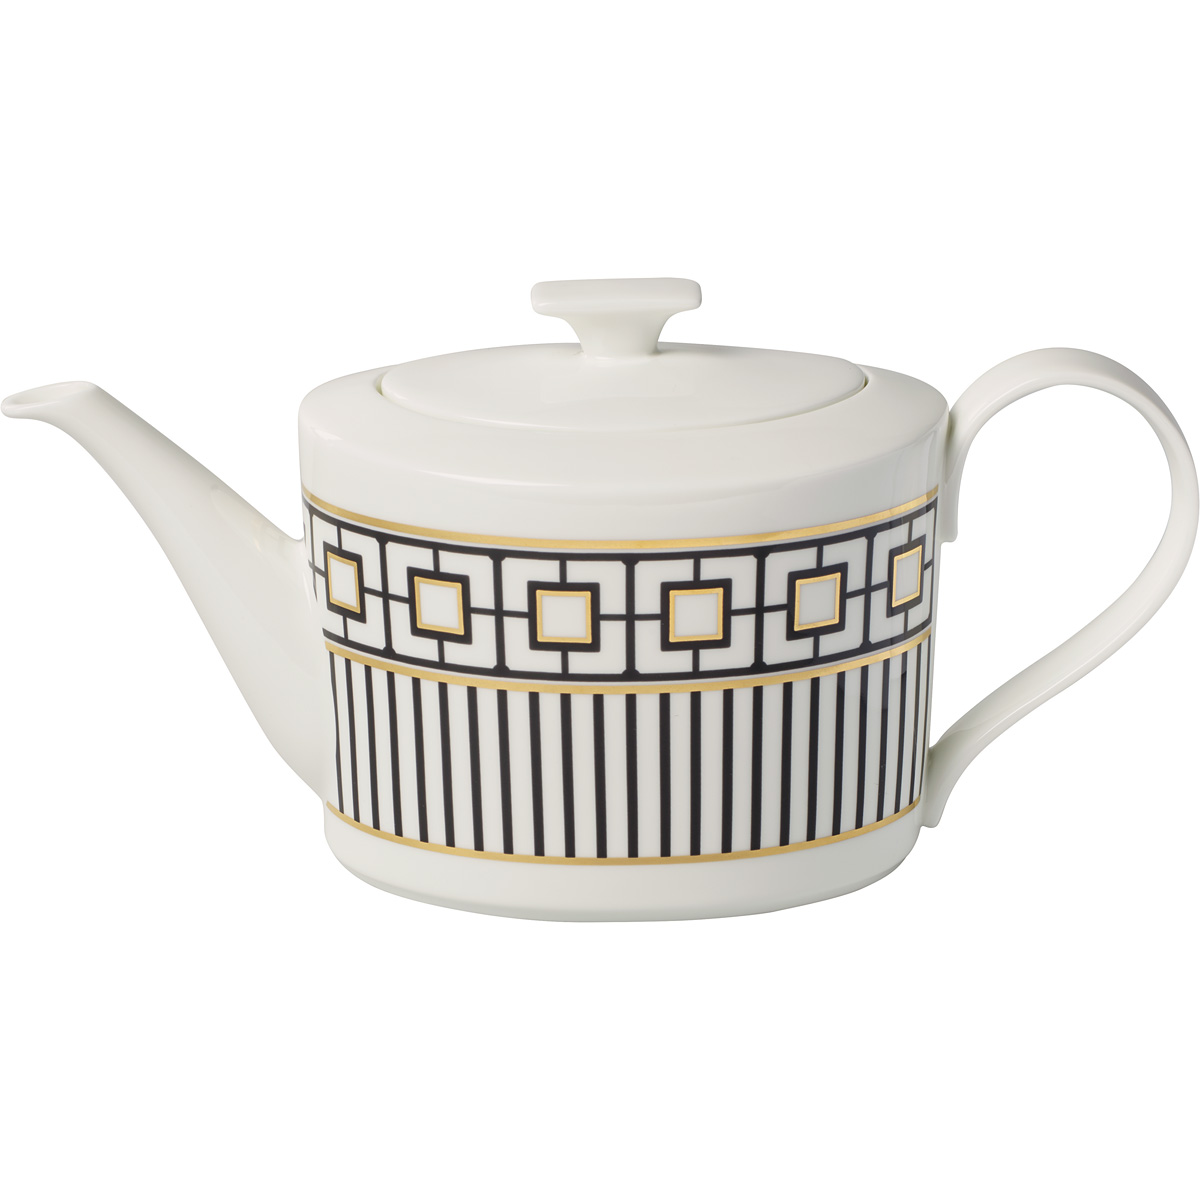 Villeroy and Boch MetroChic Small Teapot